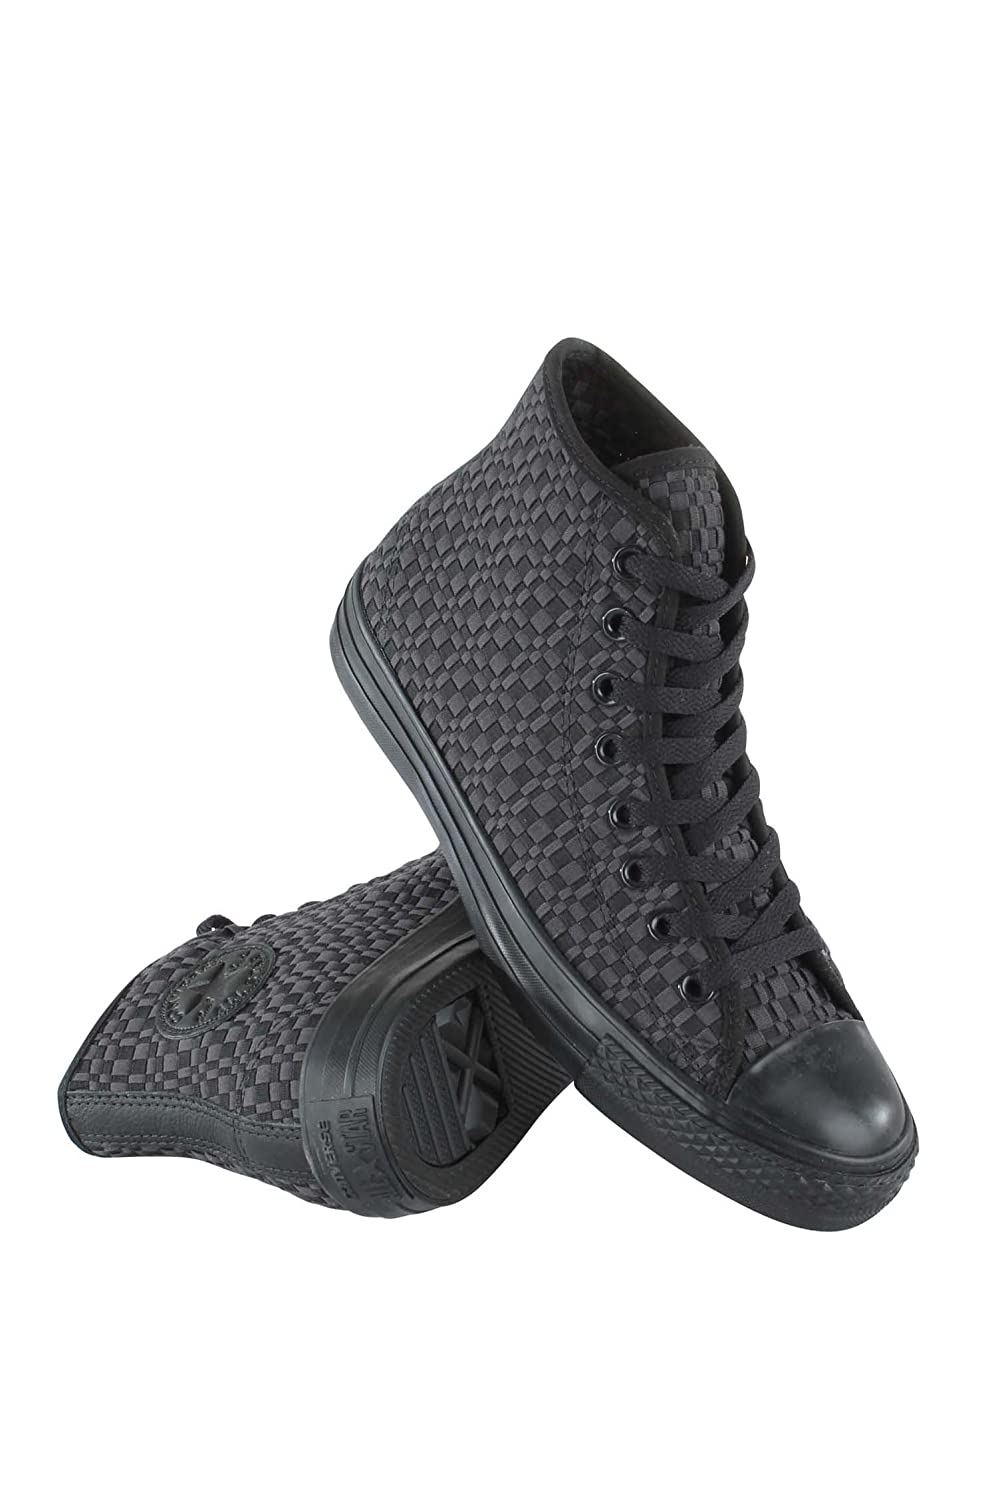 153825C MEN CHUCK TAYLOR ALL STAR HI CONVERSE BLACK/ALMOST BLACK